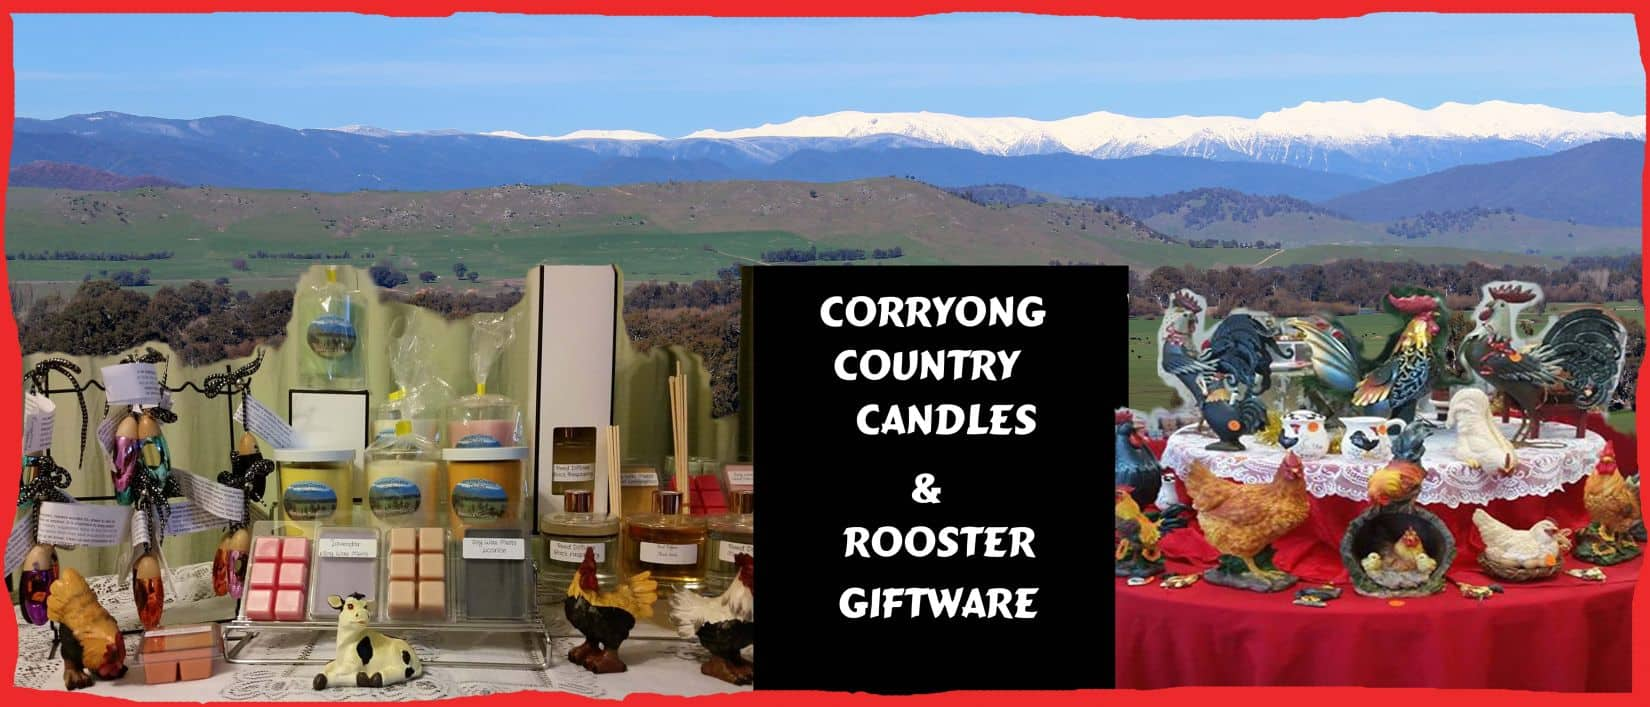 Corryong Country Candles & Rooster Giftware